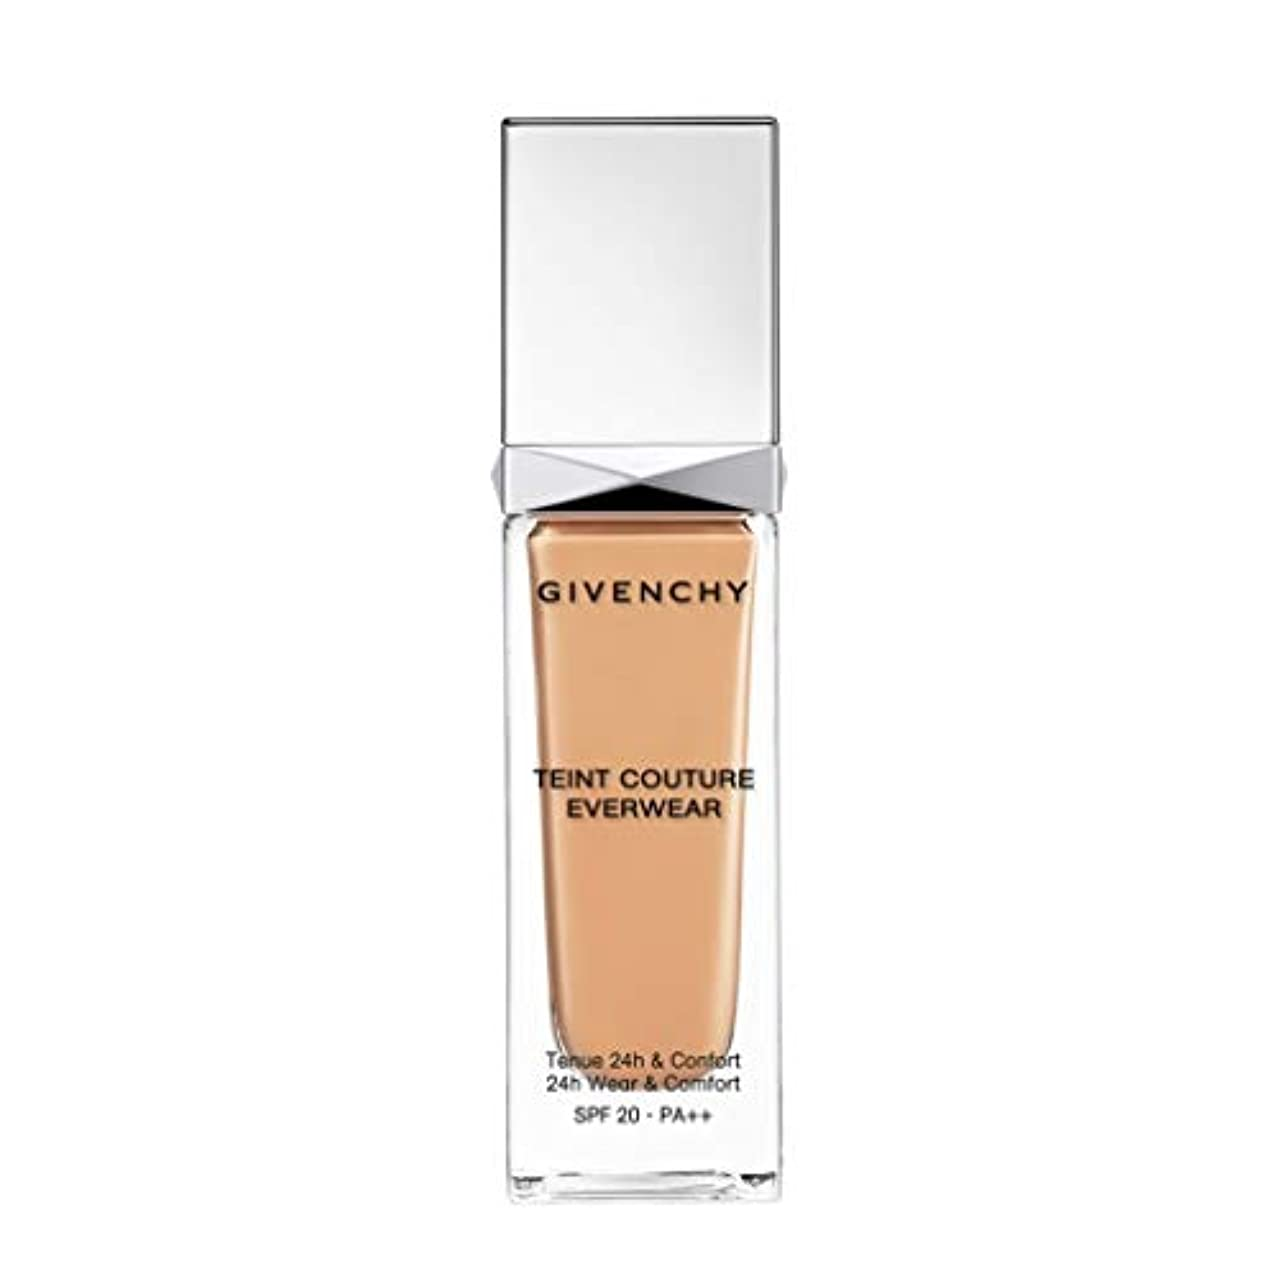 お根拠ごちそうジバンシィ Teint Couture Everwear 24H Wear & Comfort Foundation SPF 20 - # P210 30ml/1oz並行輸入品